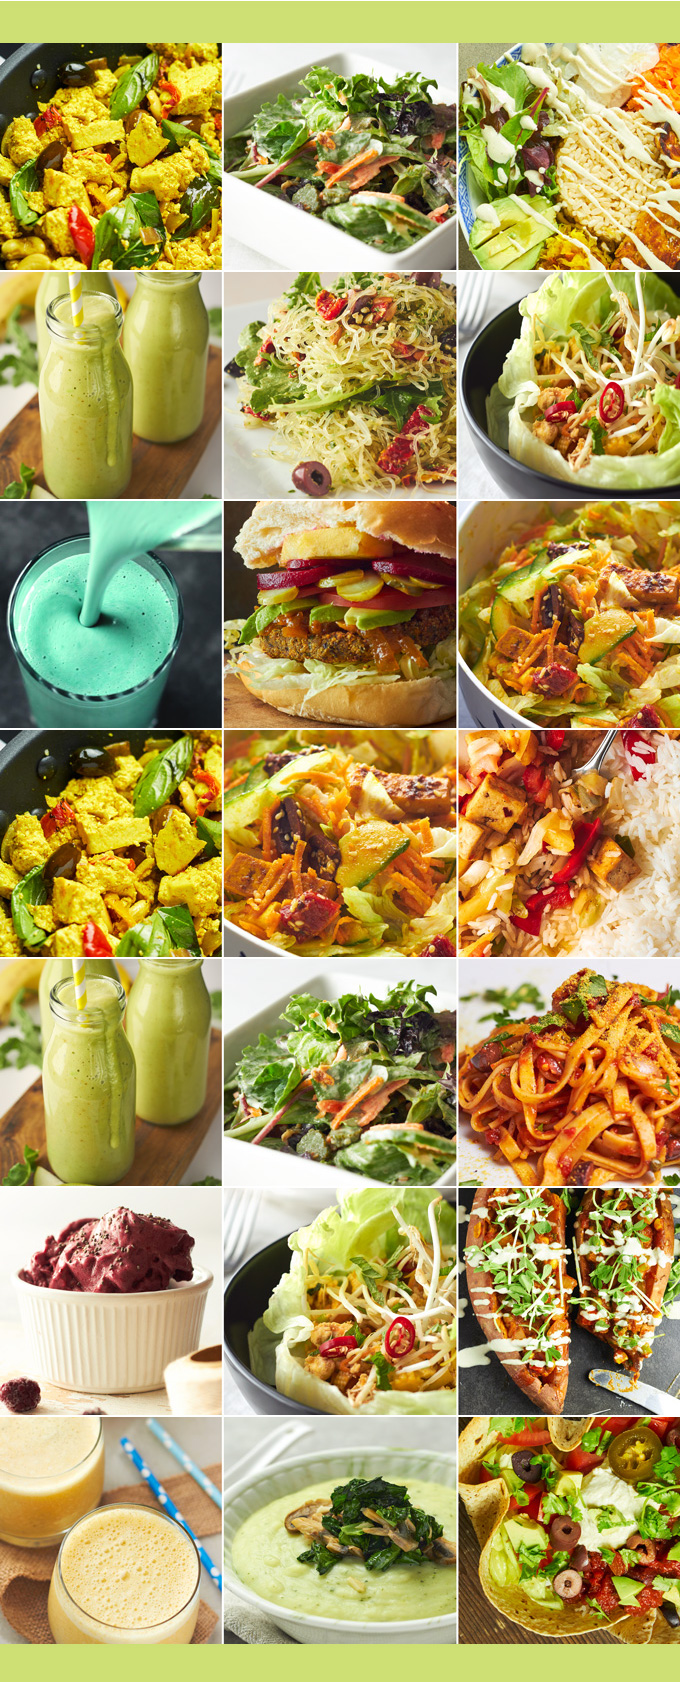 Vegan Meal Plan - one week of delicious plant-based menus